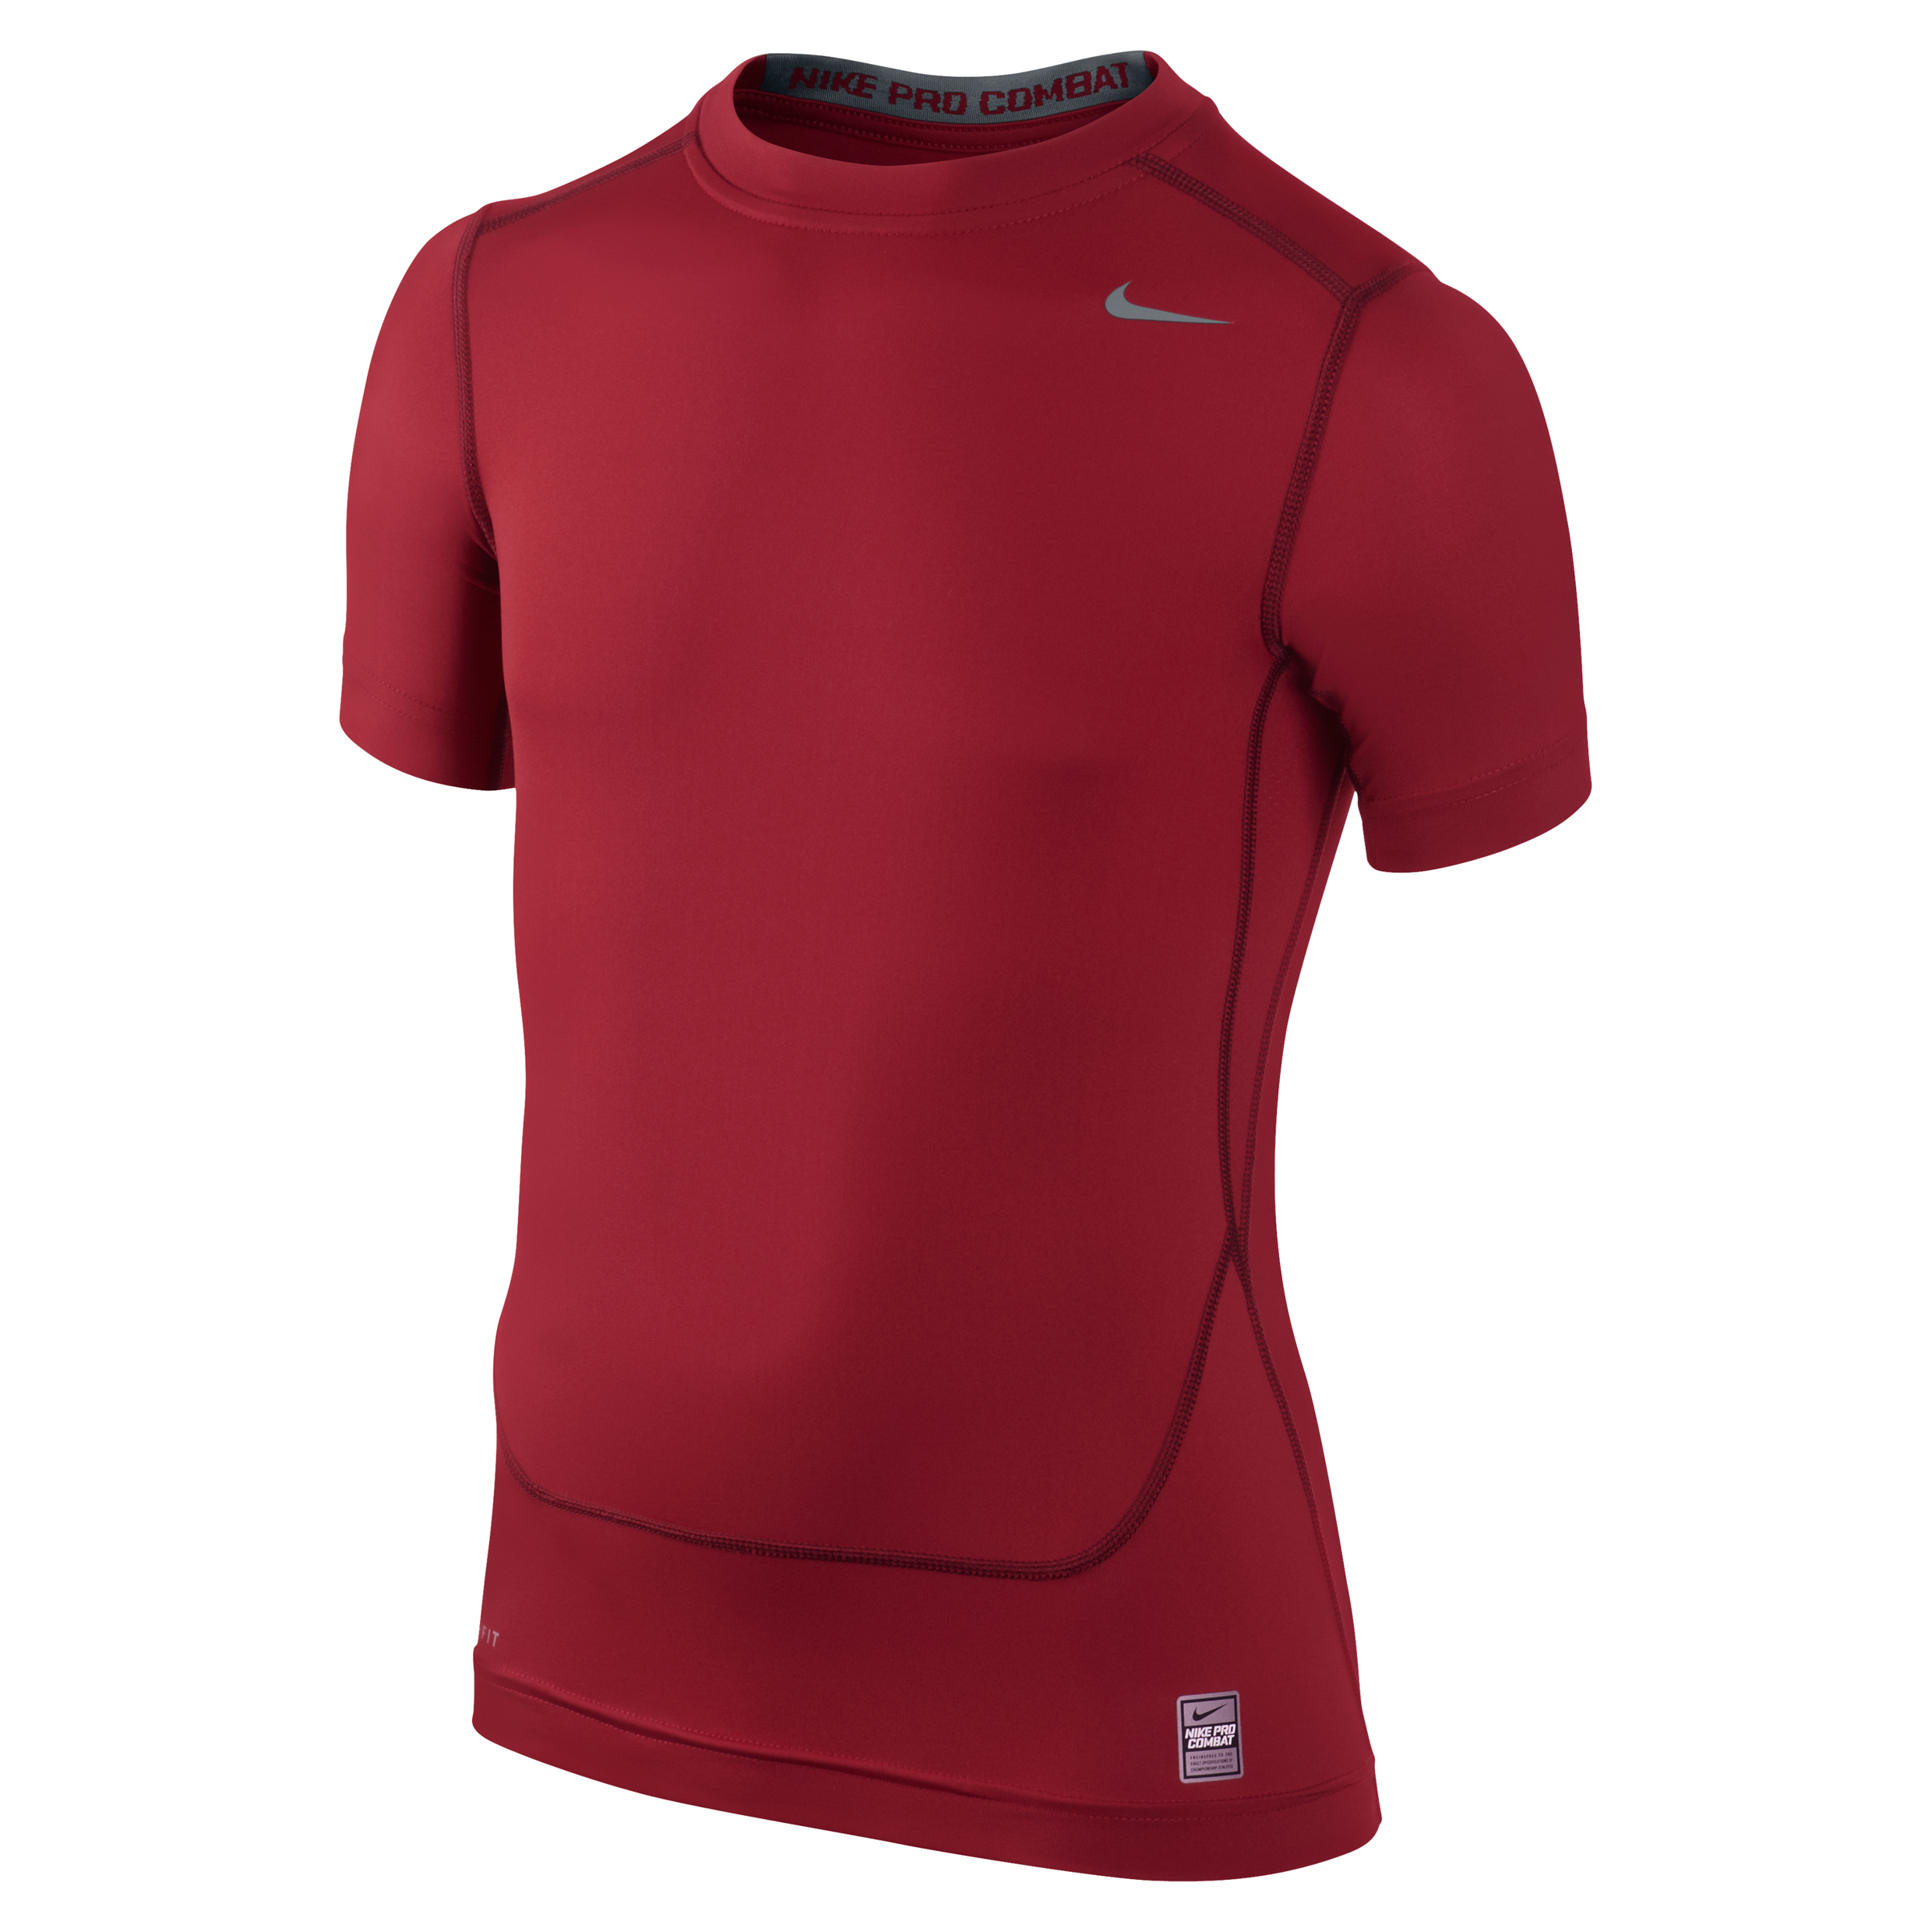 Nike Pro Combat Core Base Layer Top - Kids Red